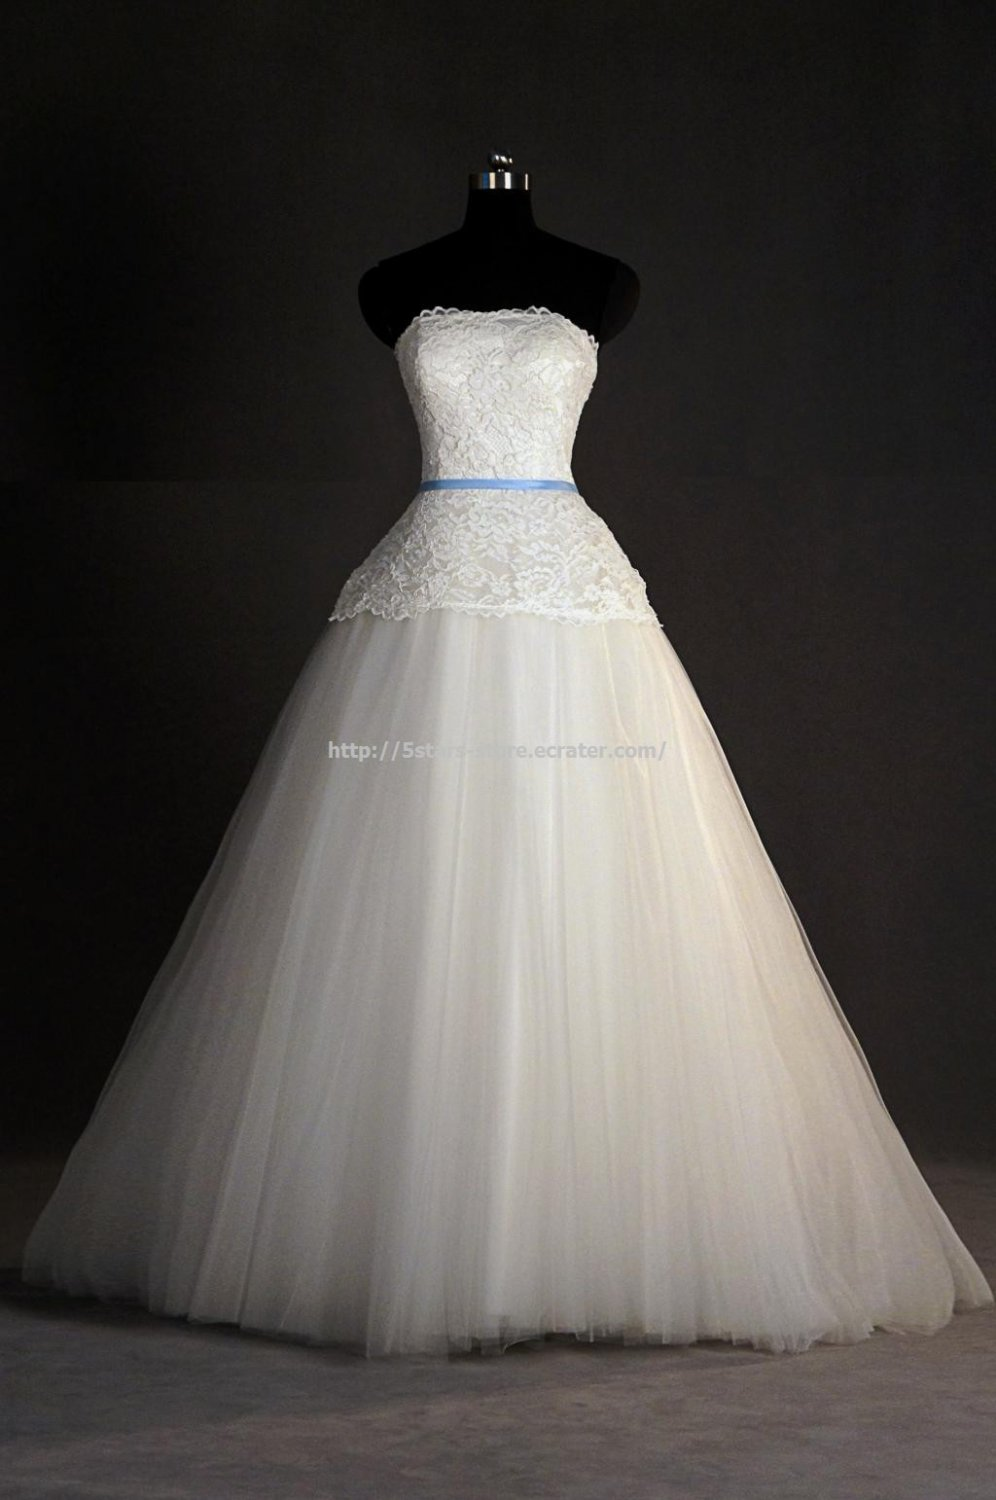 White Wedding Formal Dress Sleeveless Lace Floor-Length A-Line Bridal Dress D2015742